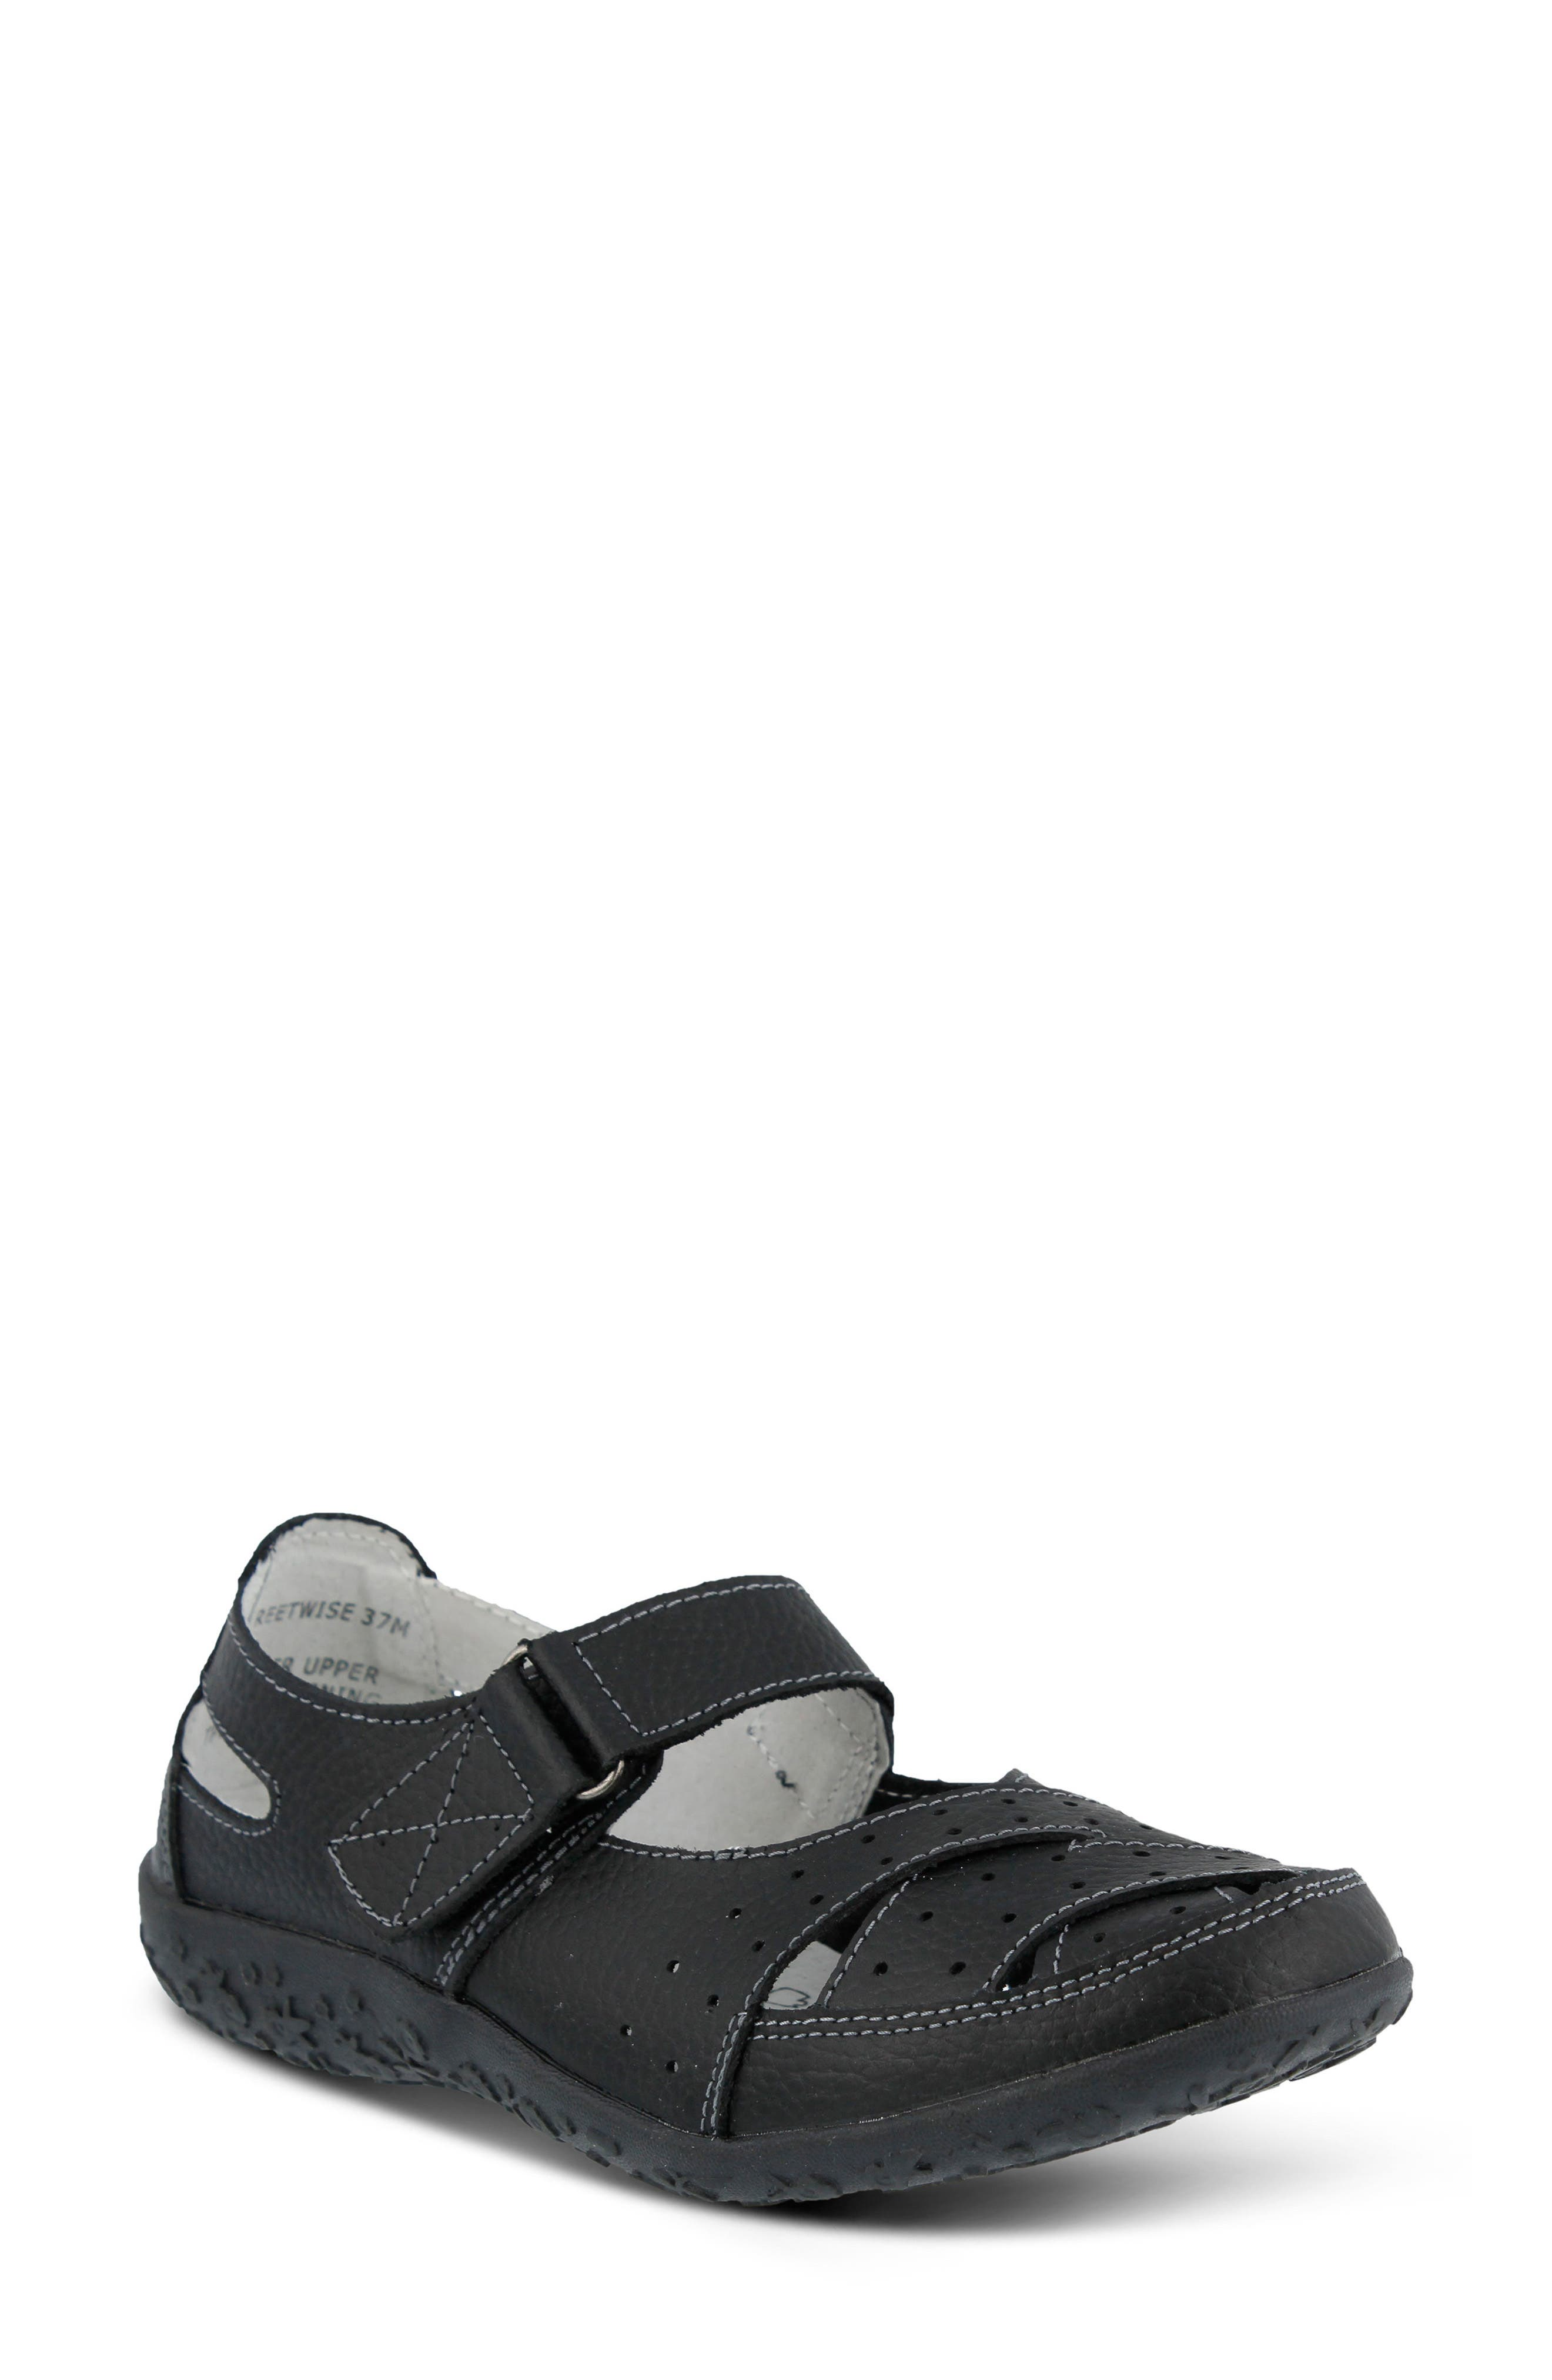 Streetwise Flat,                         Main,                         color, BLACK LEATHER